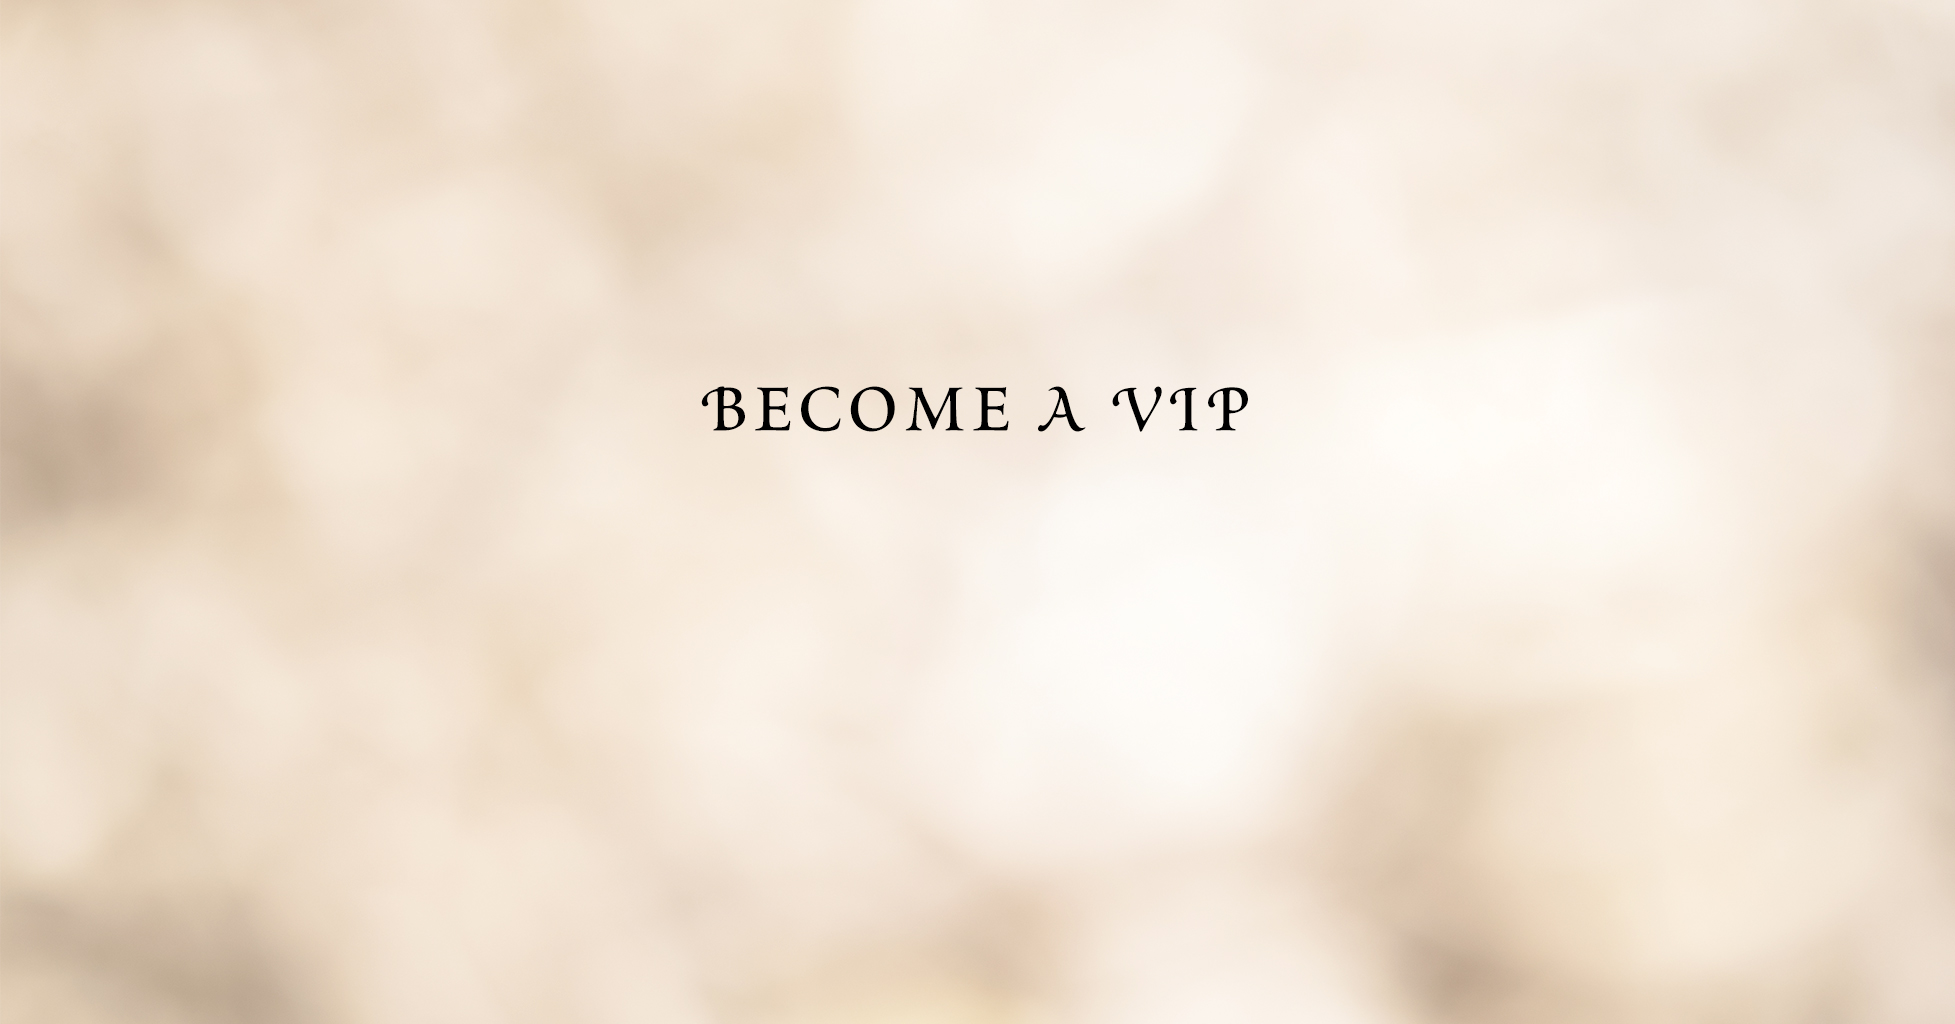 Become a VIP